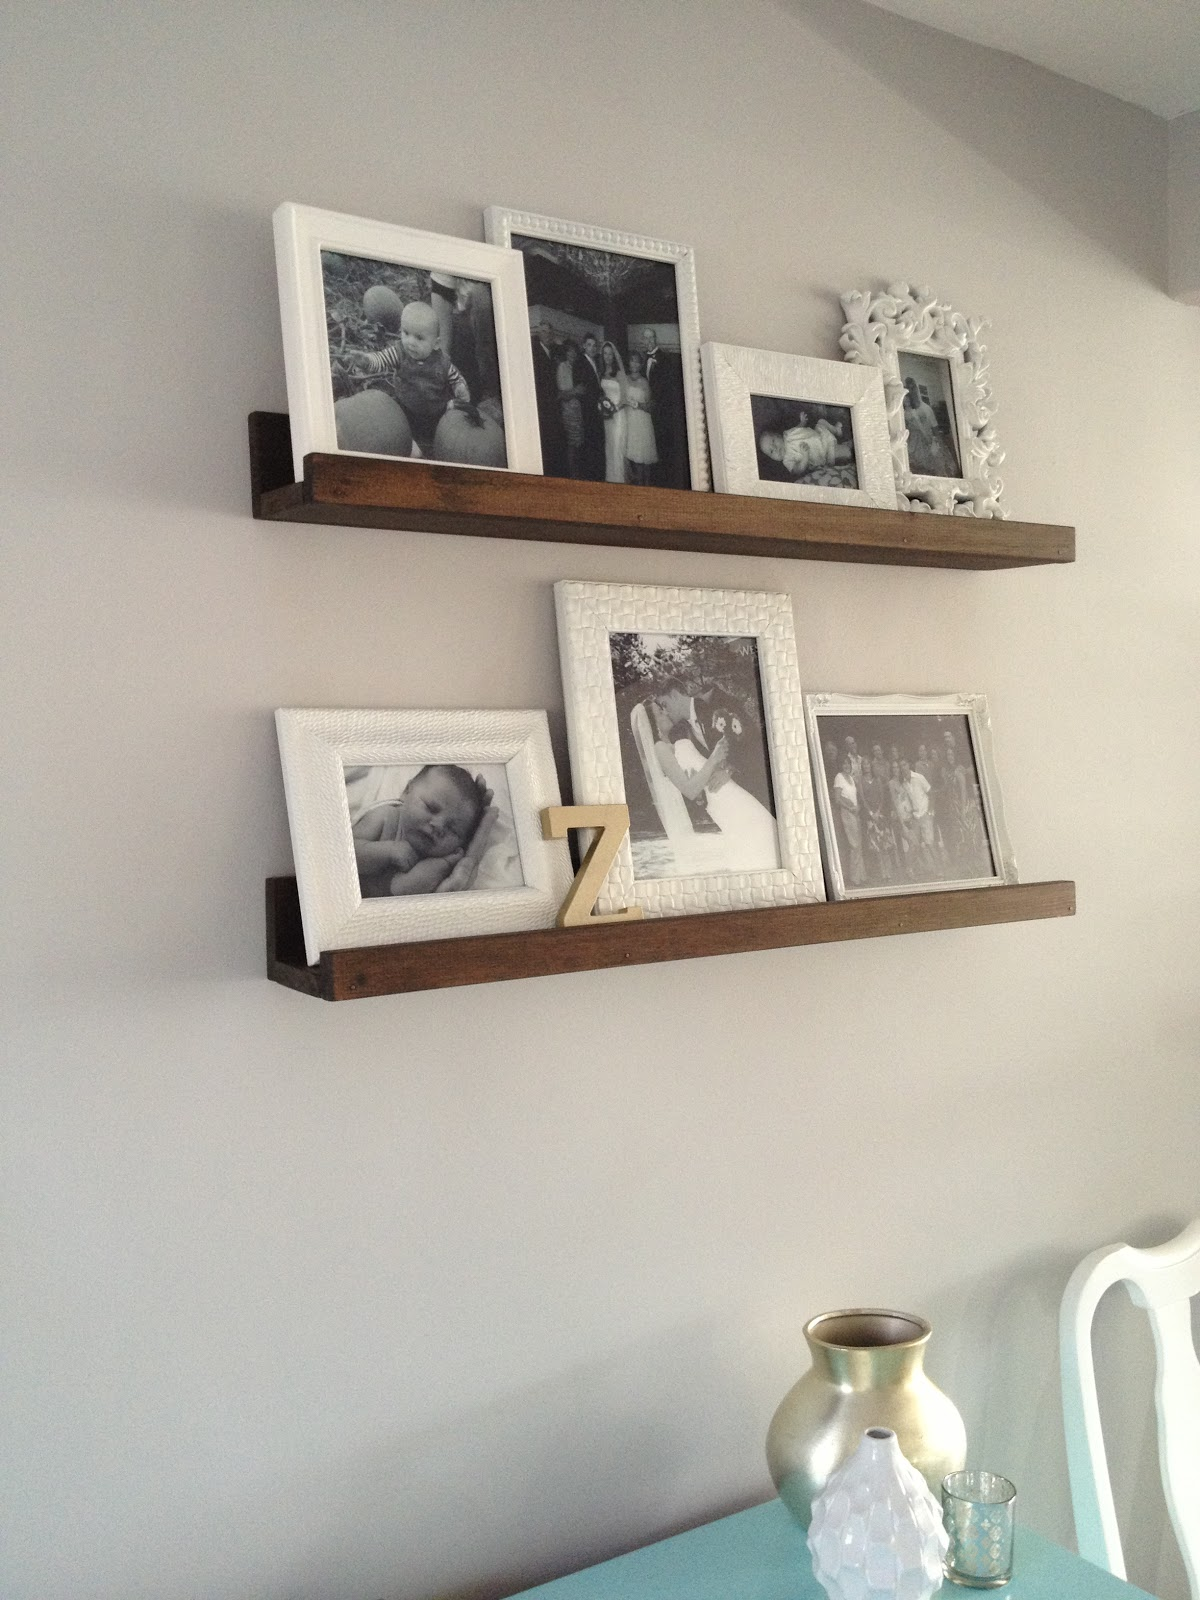 Diy Wood Wall Shelves (20 Image) | Wall Shelves